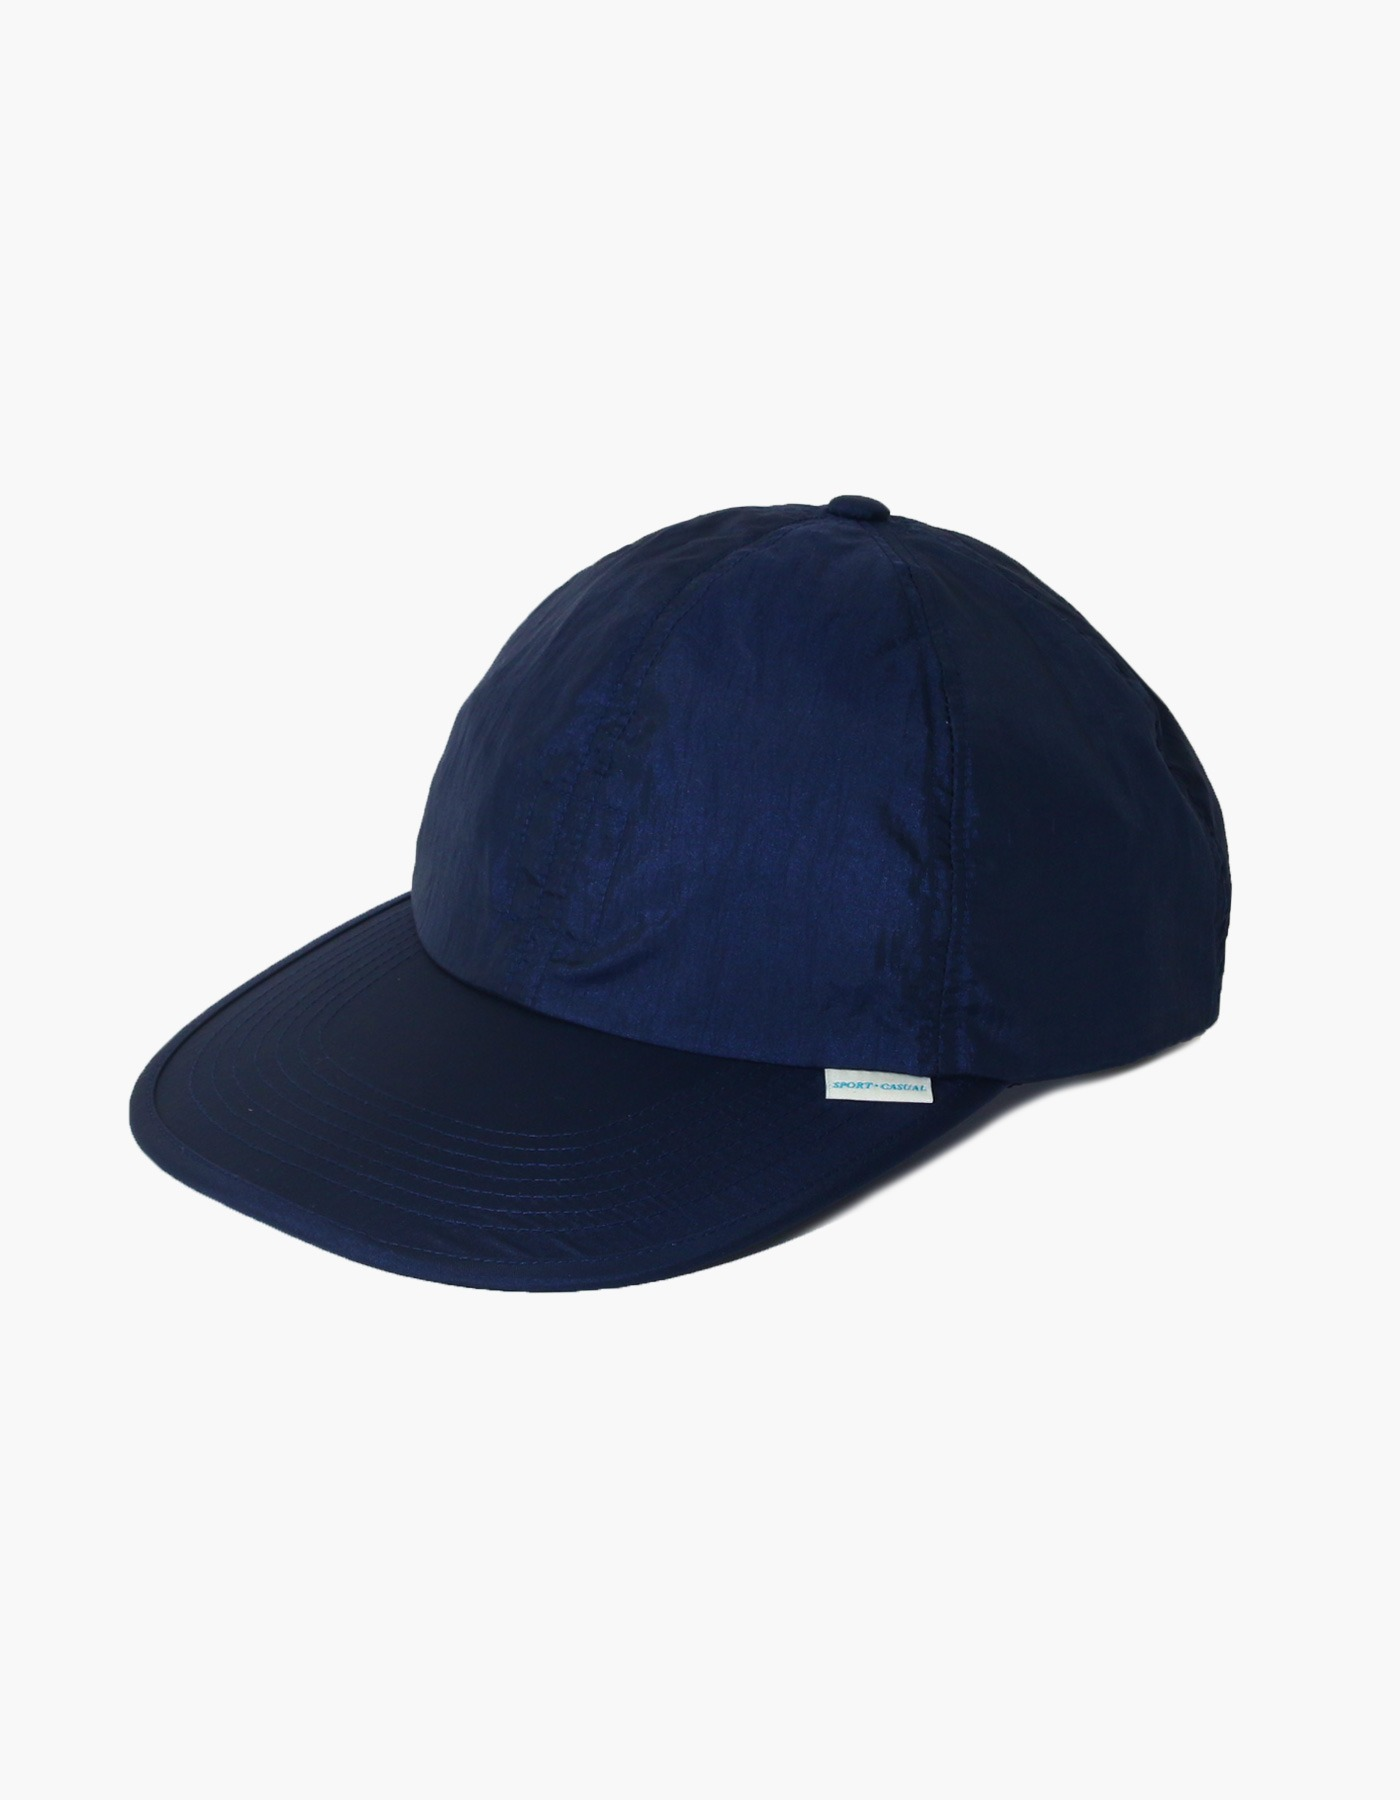 NYLON DIAMOND WASHER 6 PANEL CAP / NAVY